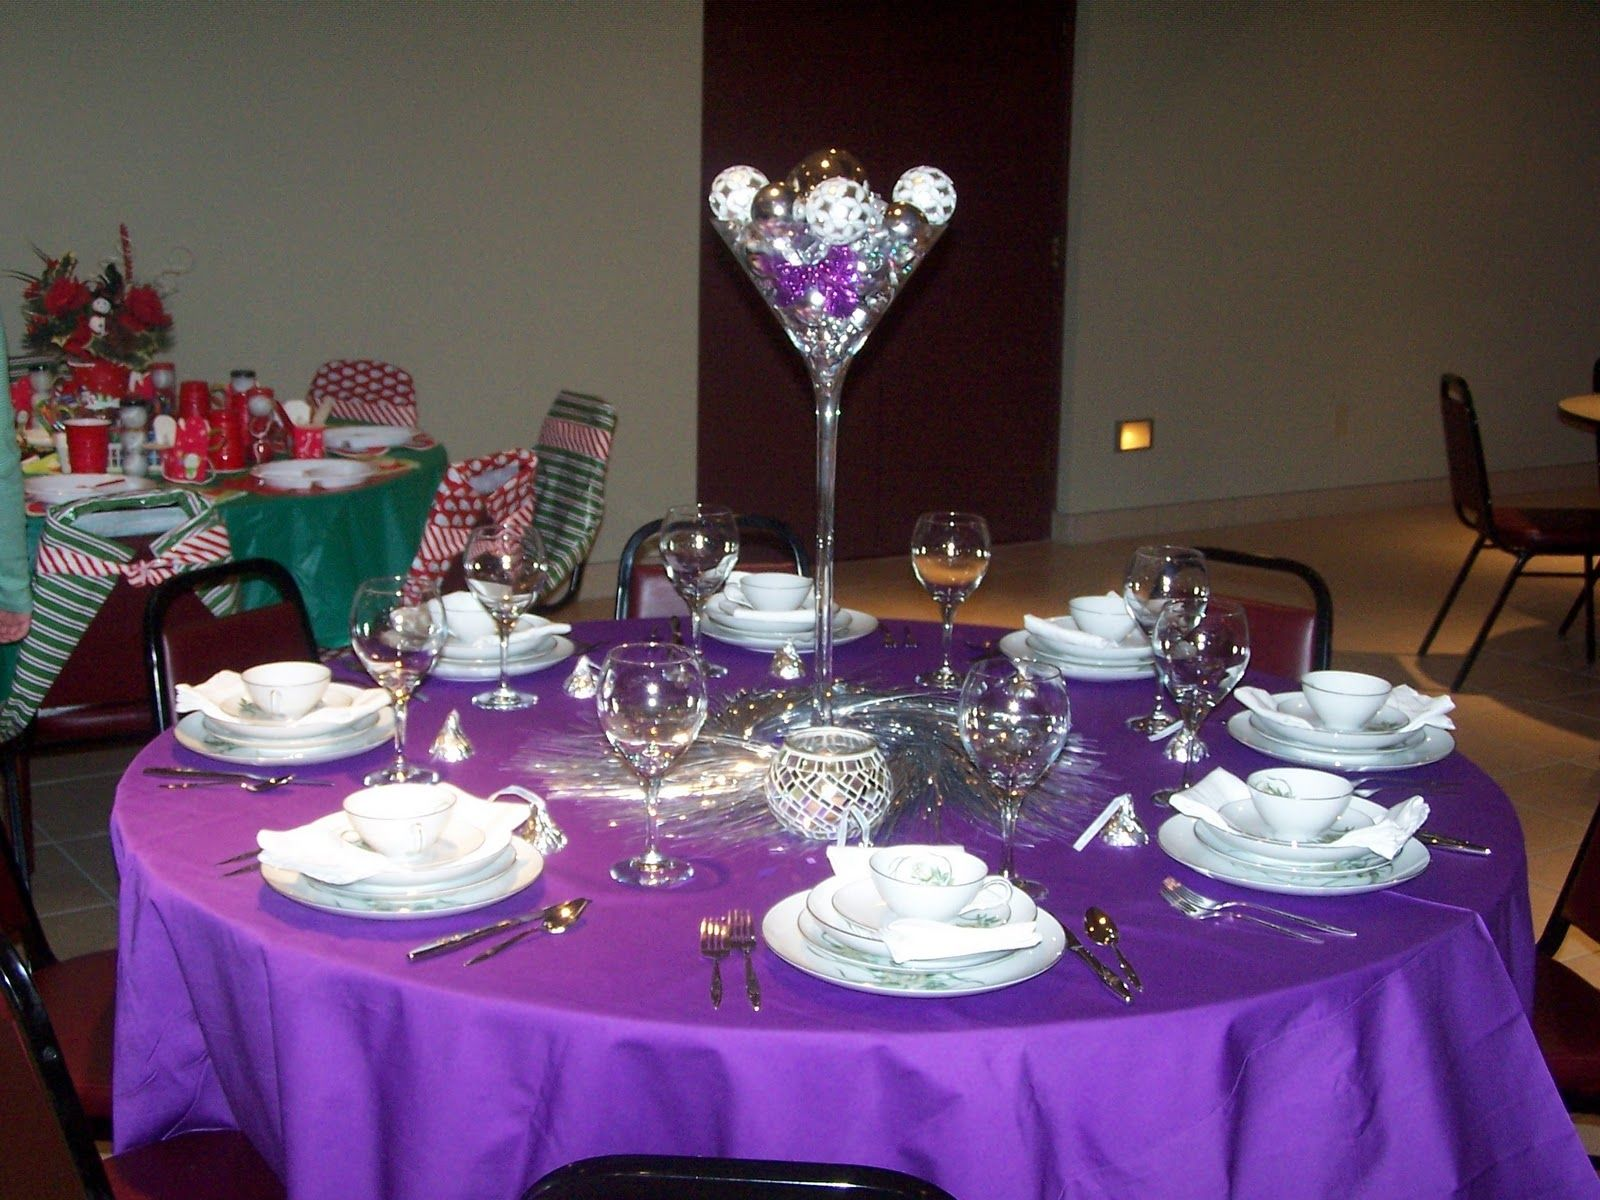 pictures of pastor anniversary decor | Table decorated by ...